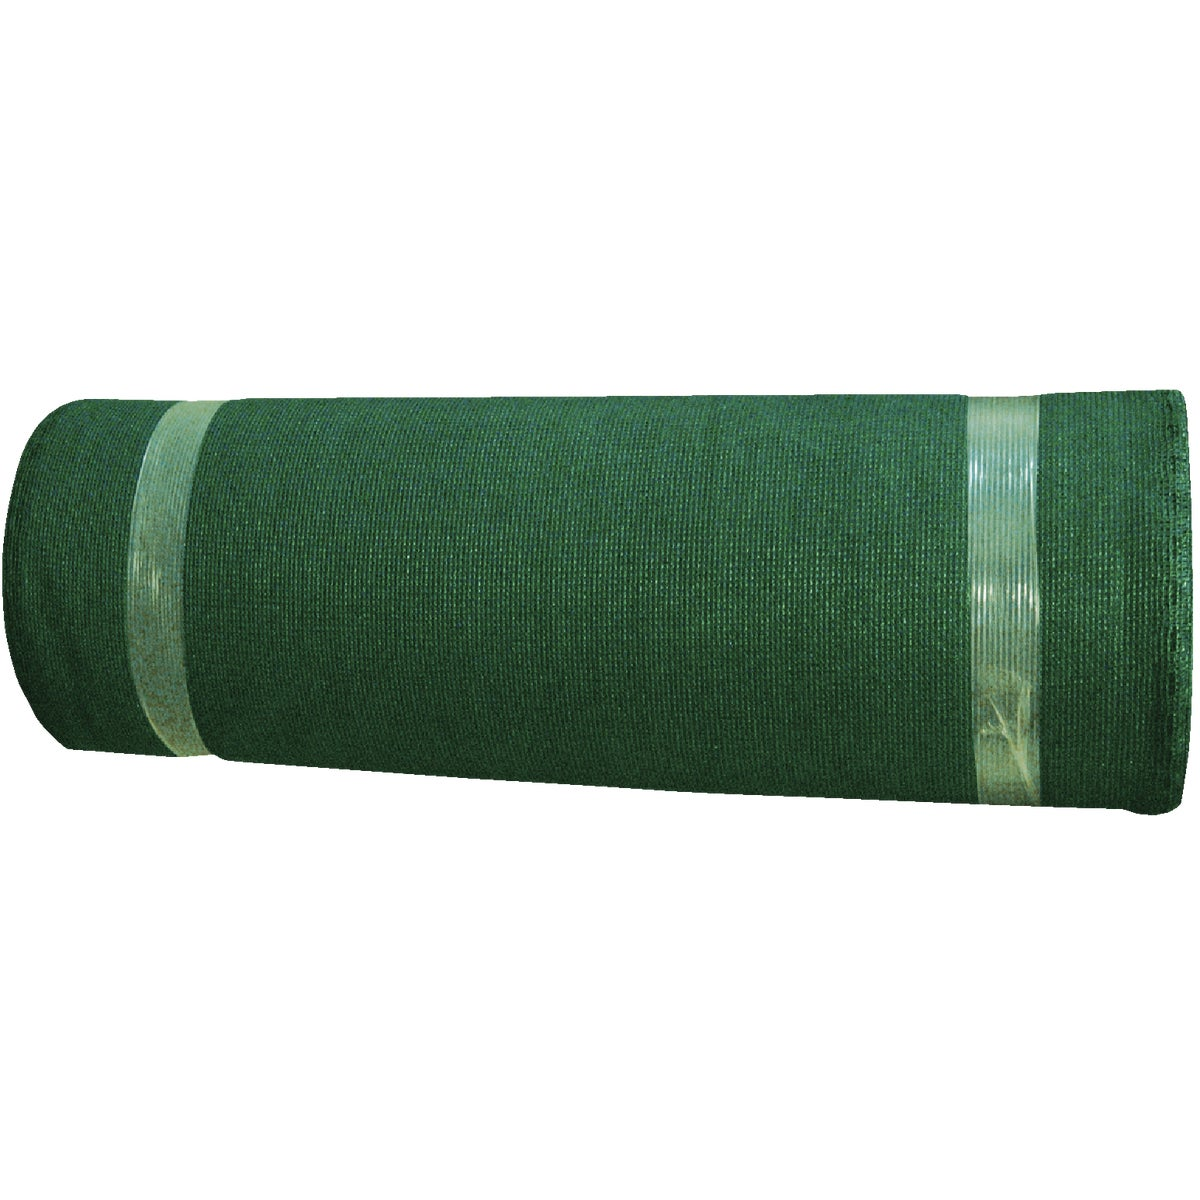 12X50 70% UV GREEN SHADE - 435998 by Gale Pacific Coolaro